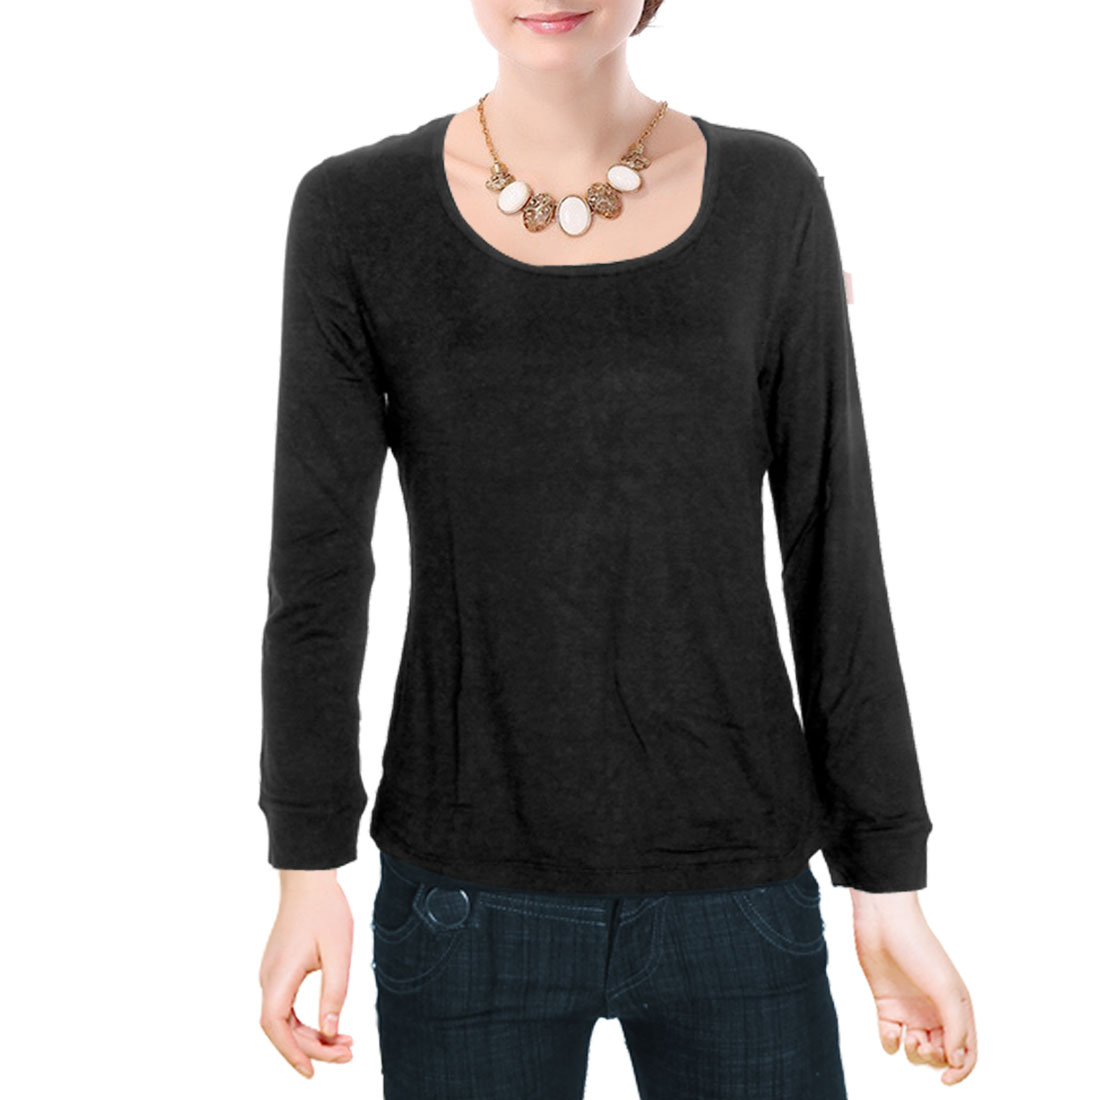 Ladies Black Round Neck Shirt Long Sleeve Stretch Top M